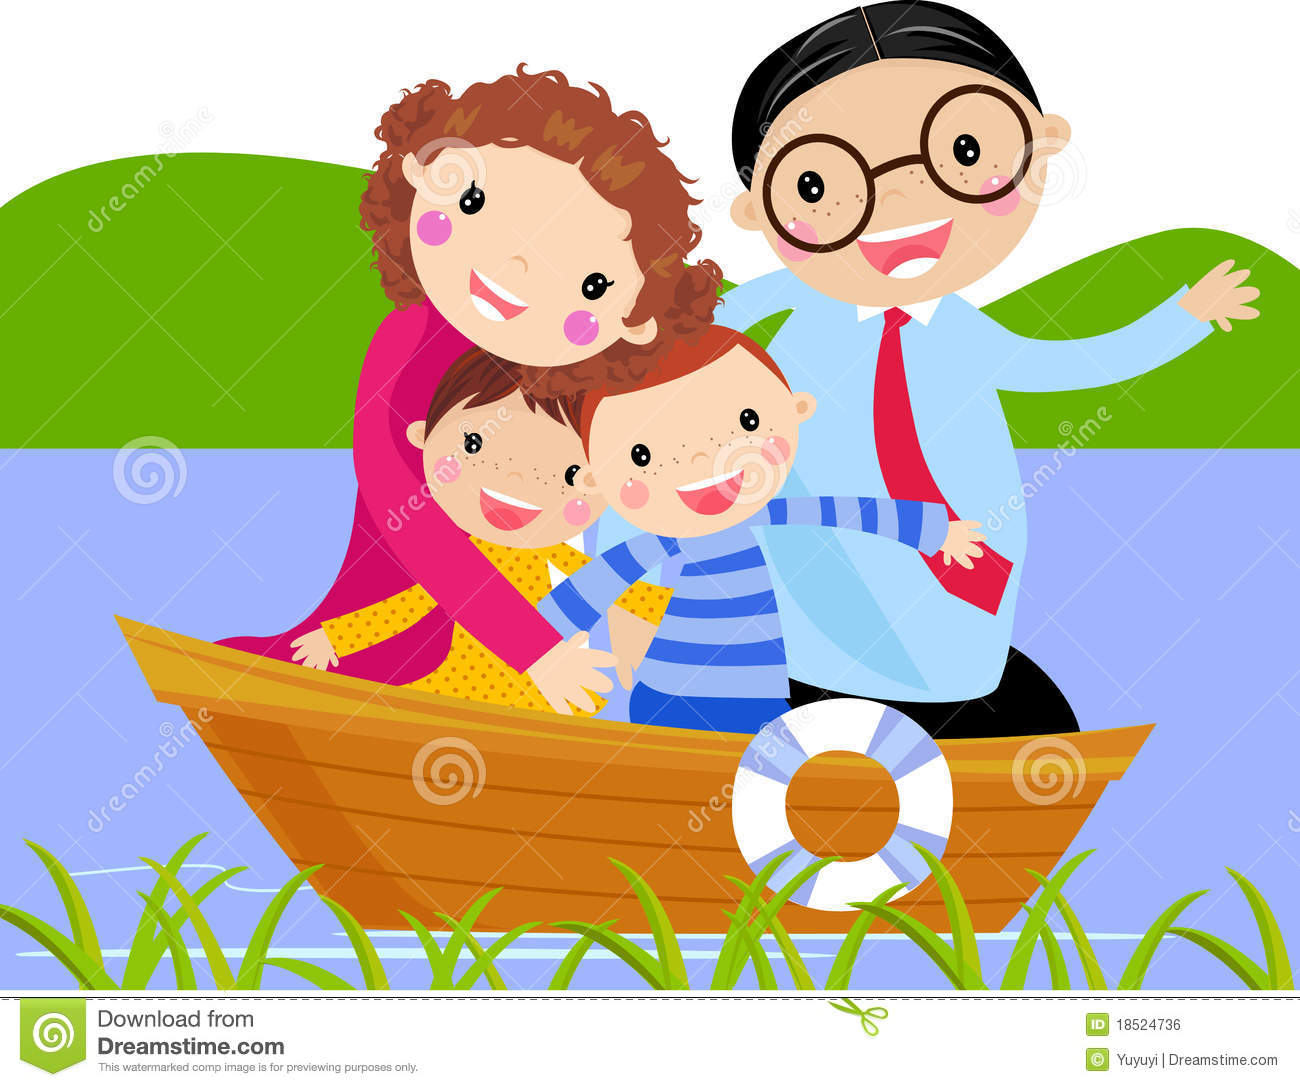 Sailing Boat clipart family boating Family Clipart cliparts Boating Boating